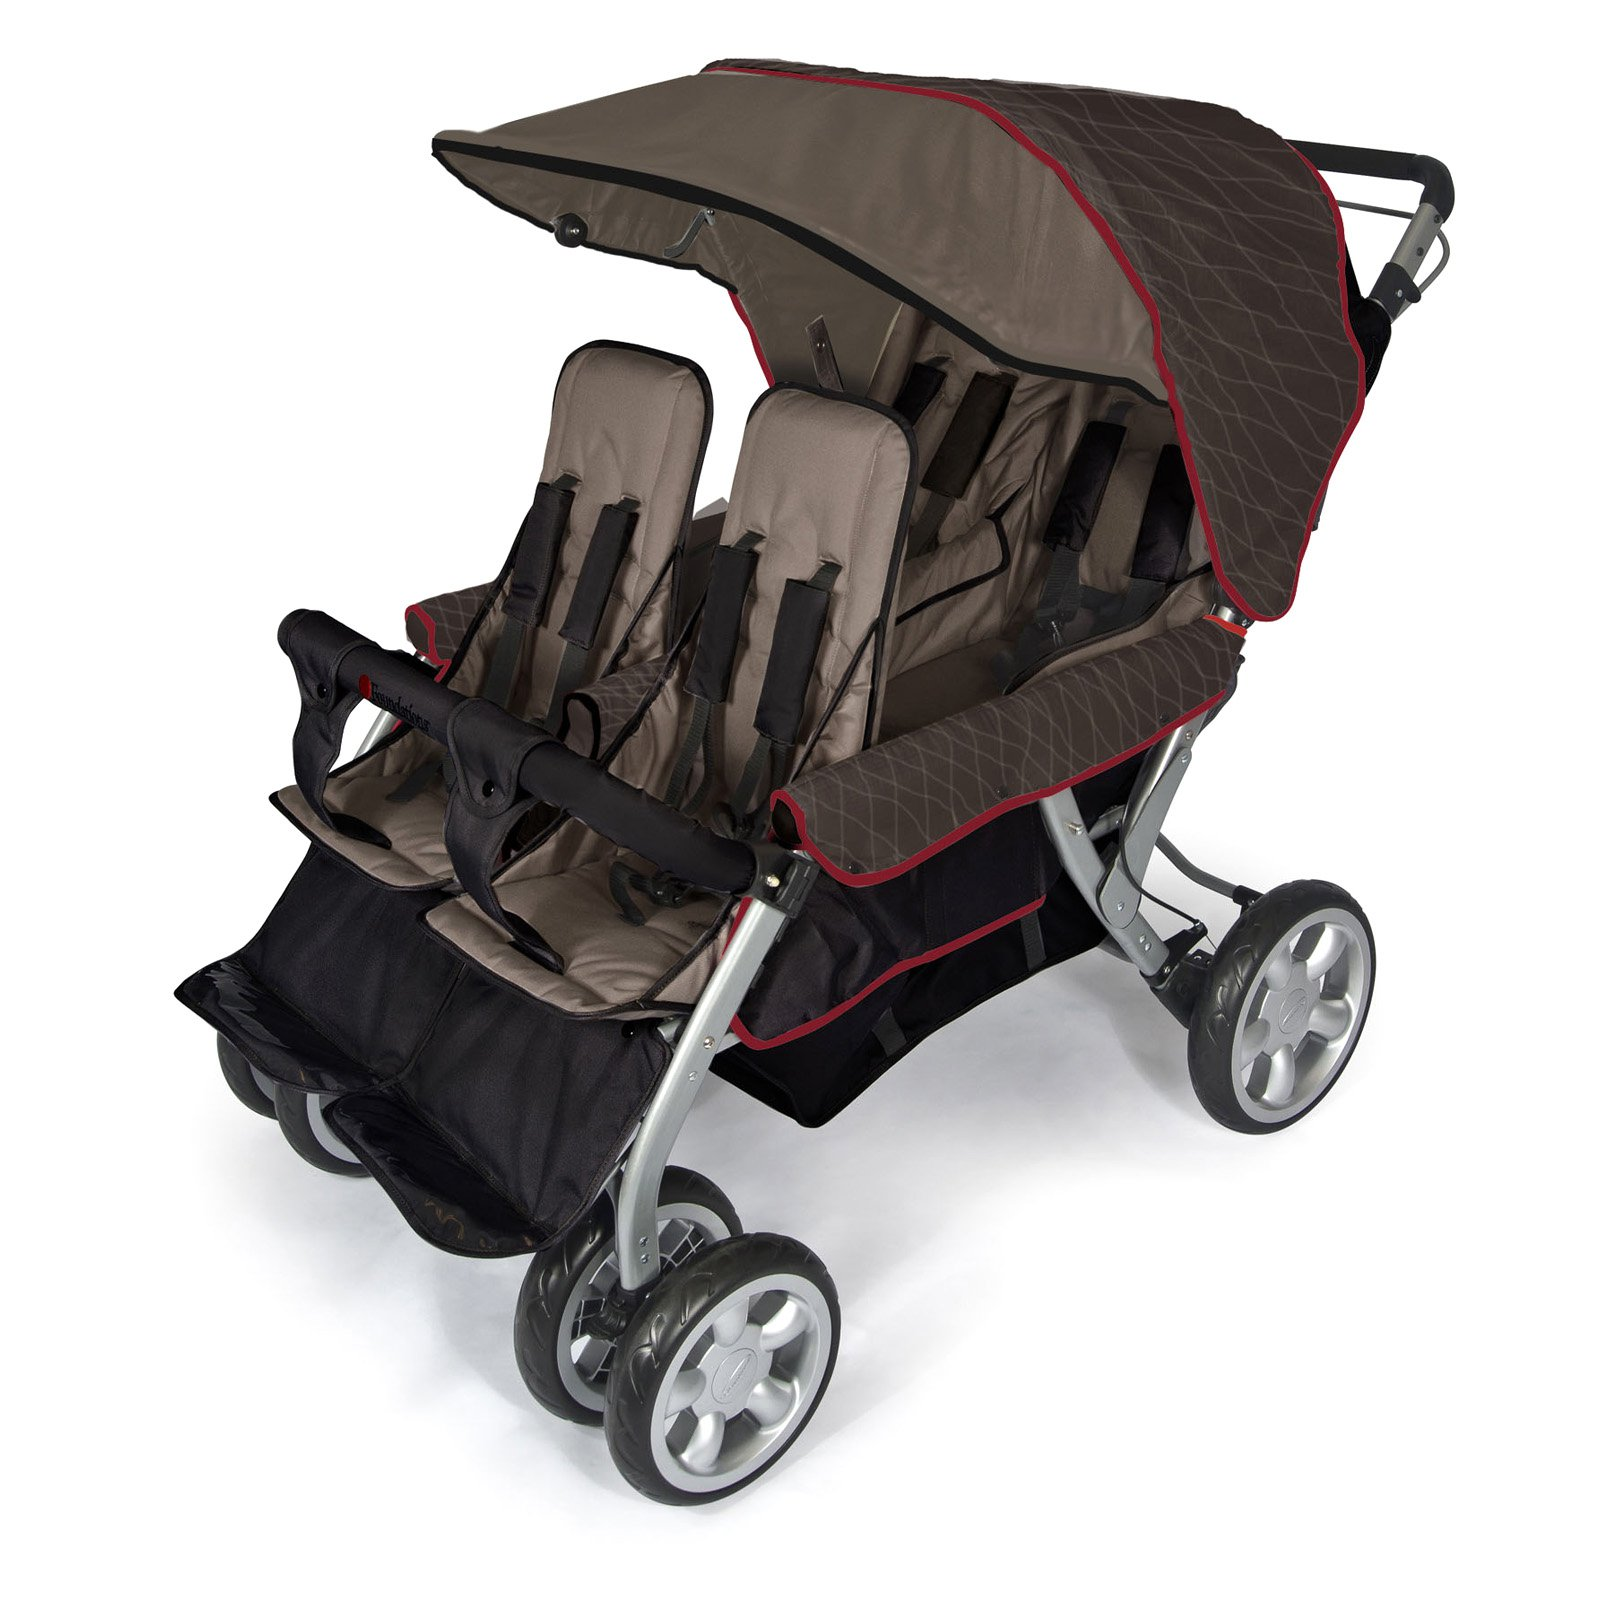 Foundations Quad LX 4 Passenger Stroller - Earthscape